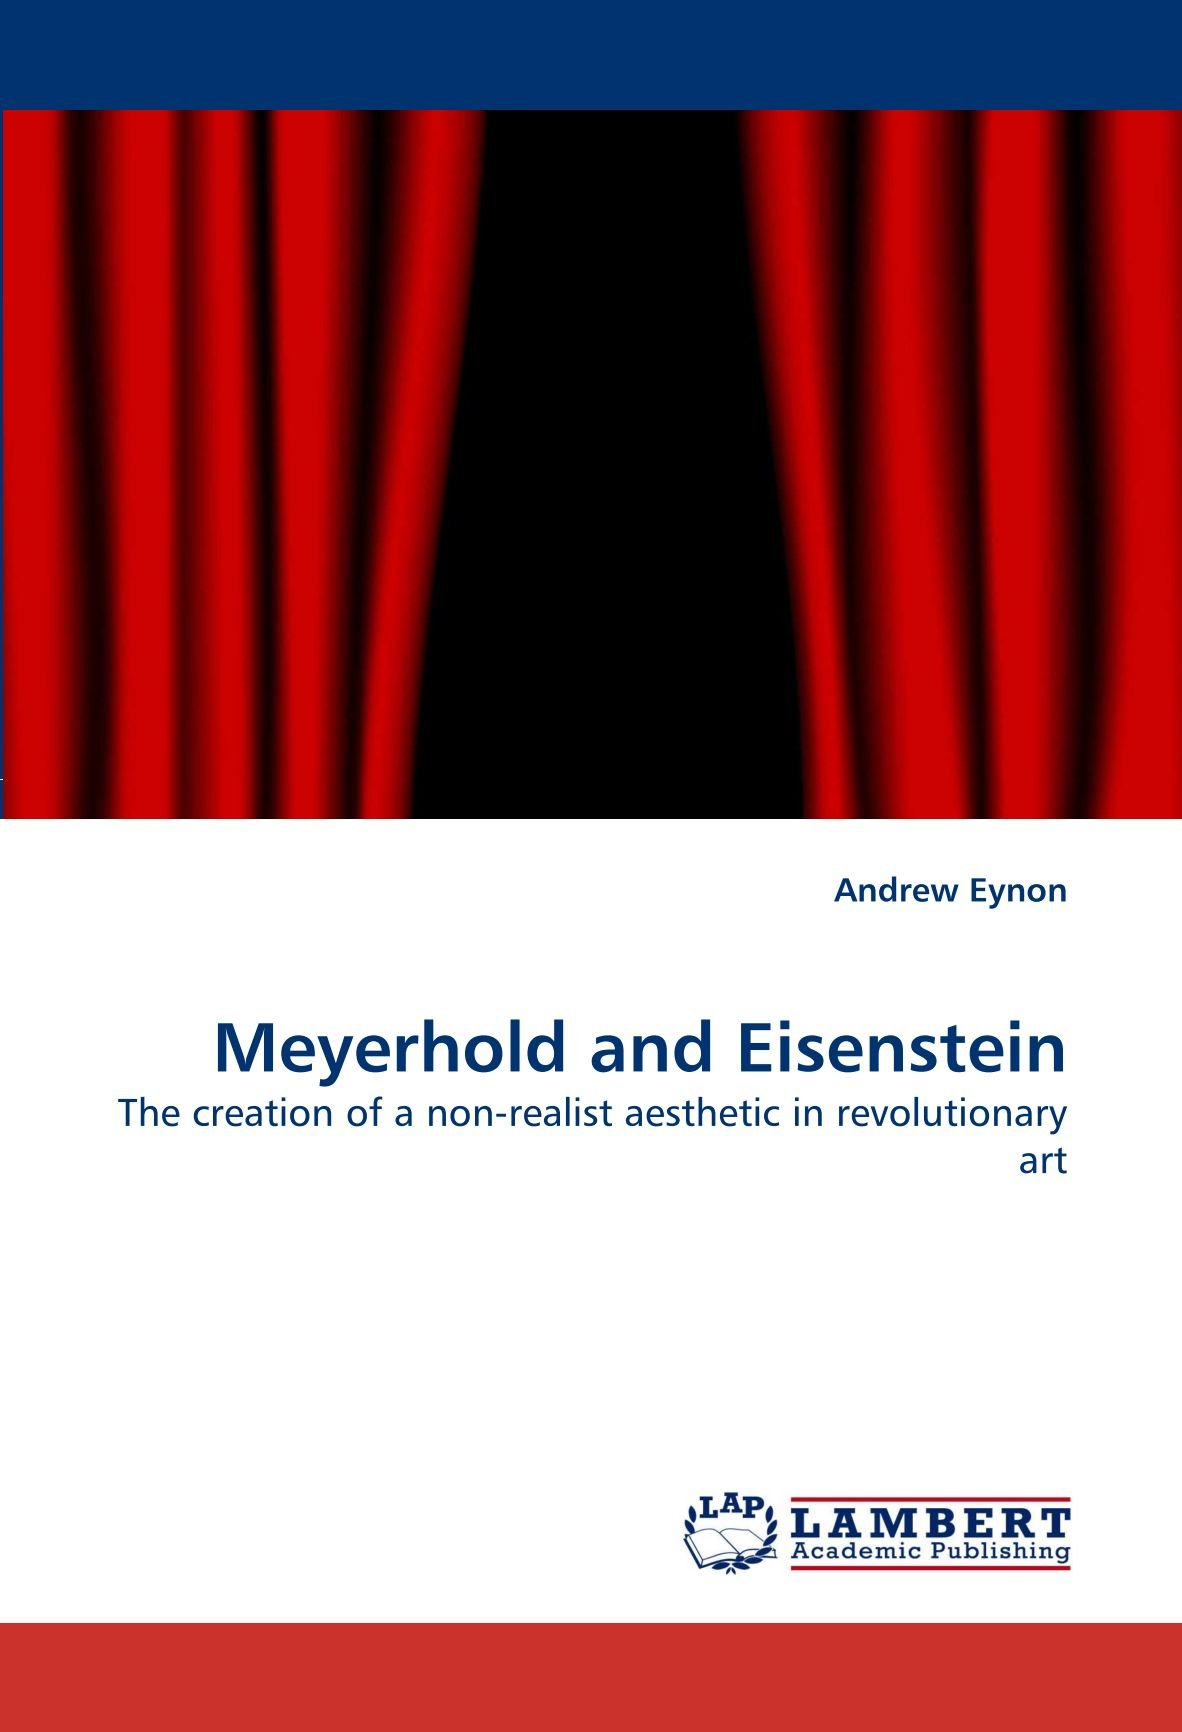 Download Meyerhold and Eisenstein: The creation of a non-realist aesthetic in revolutionary art PDF